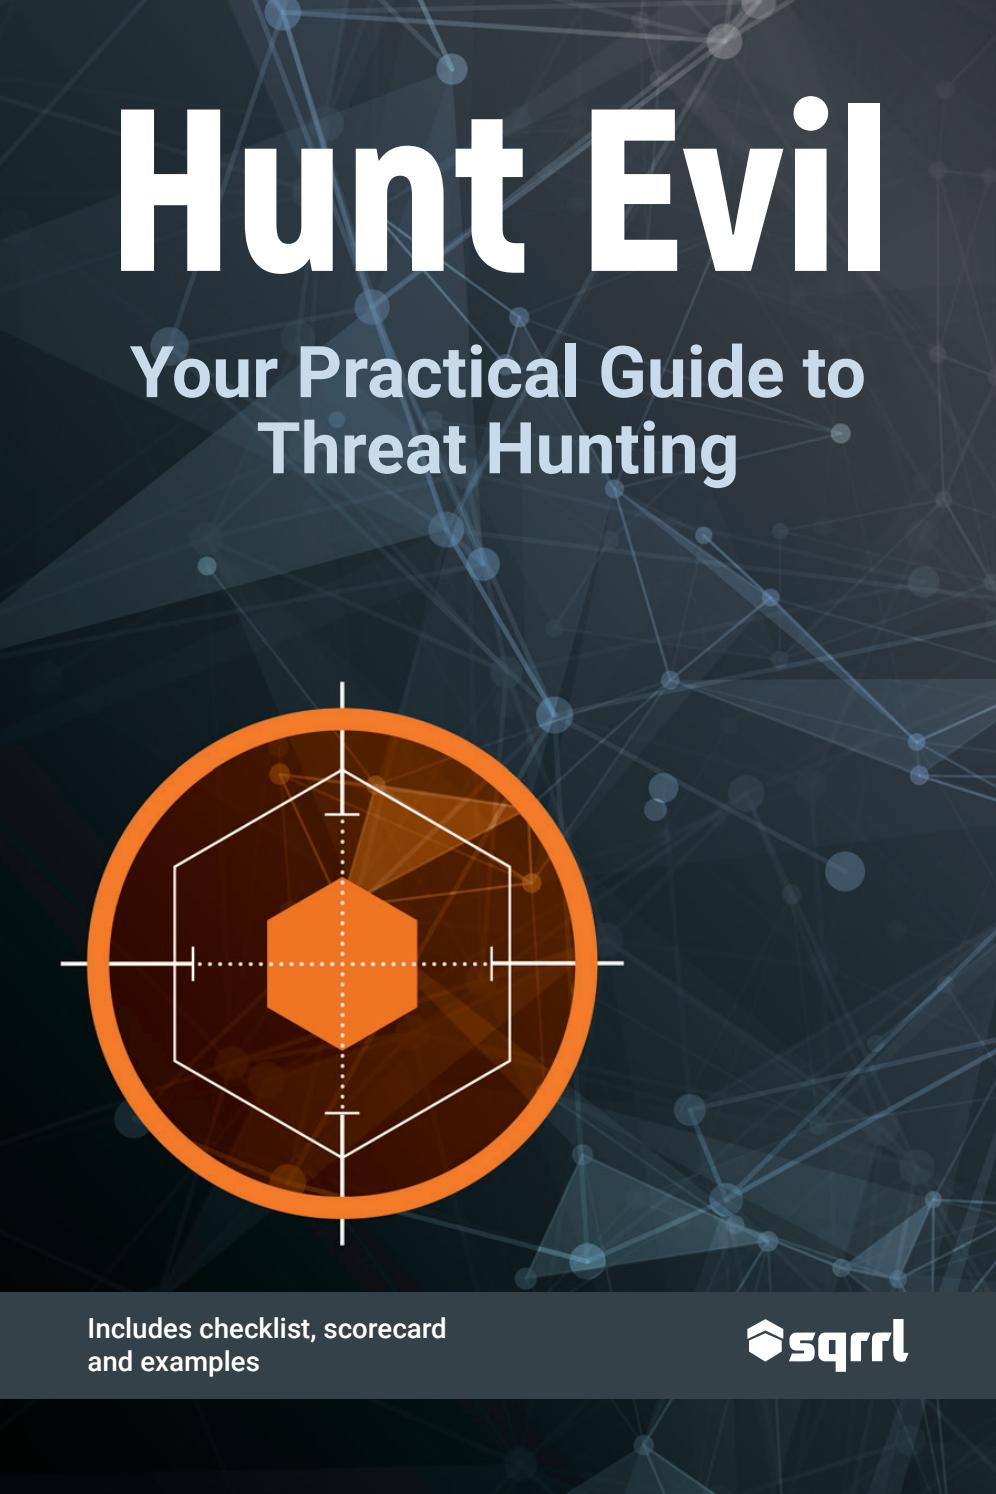 Your Practical Guide to Threat Hunting by Matthew Hosburgh